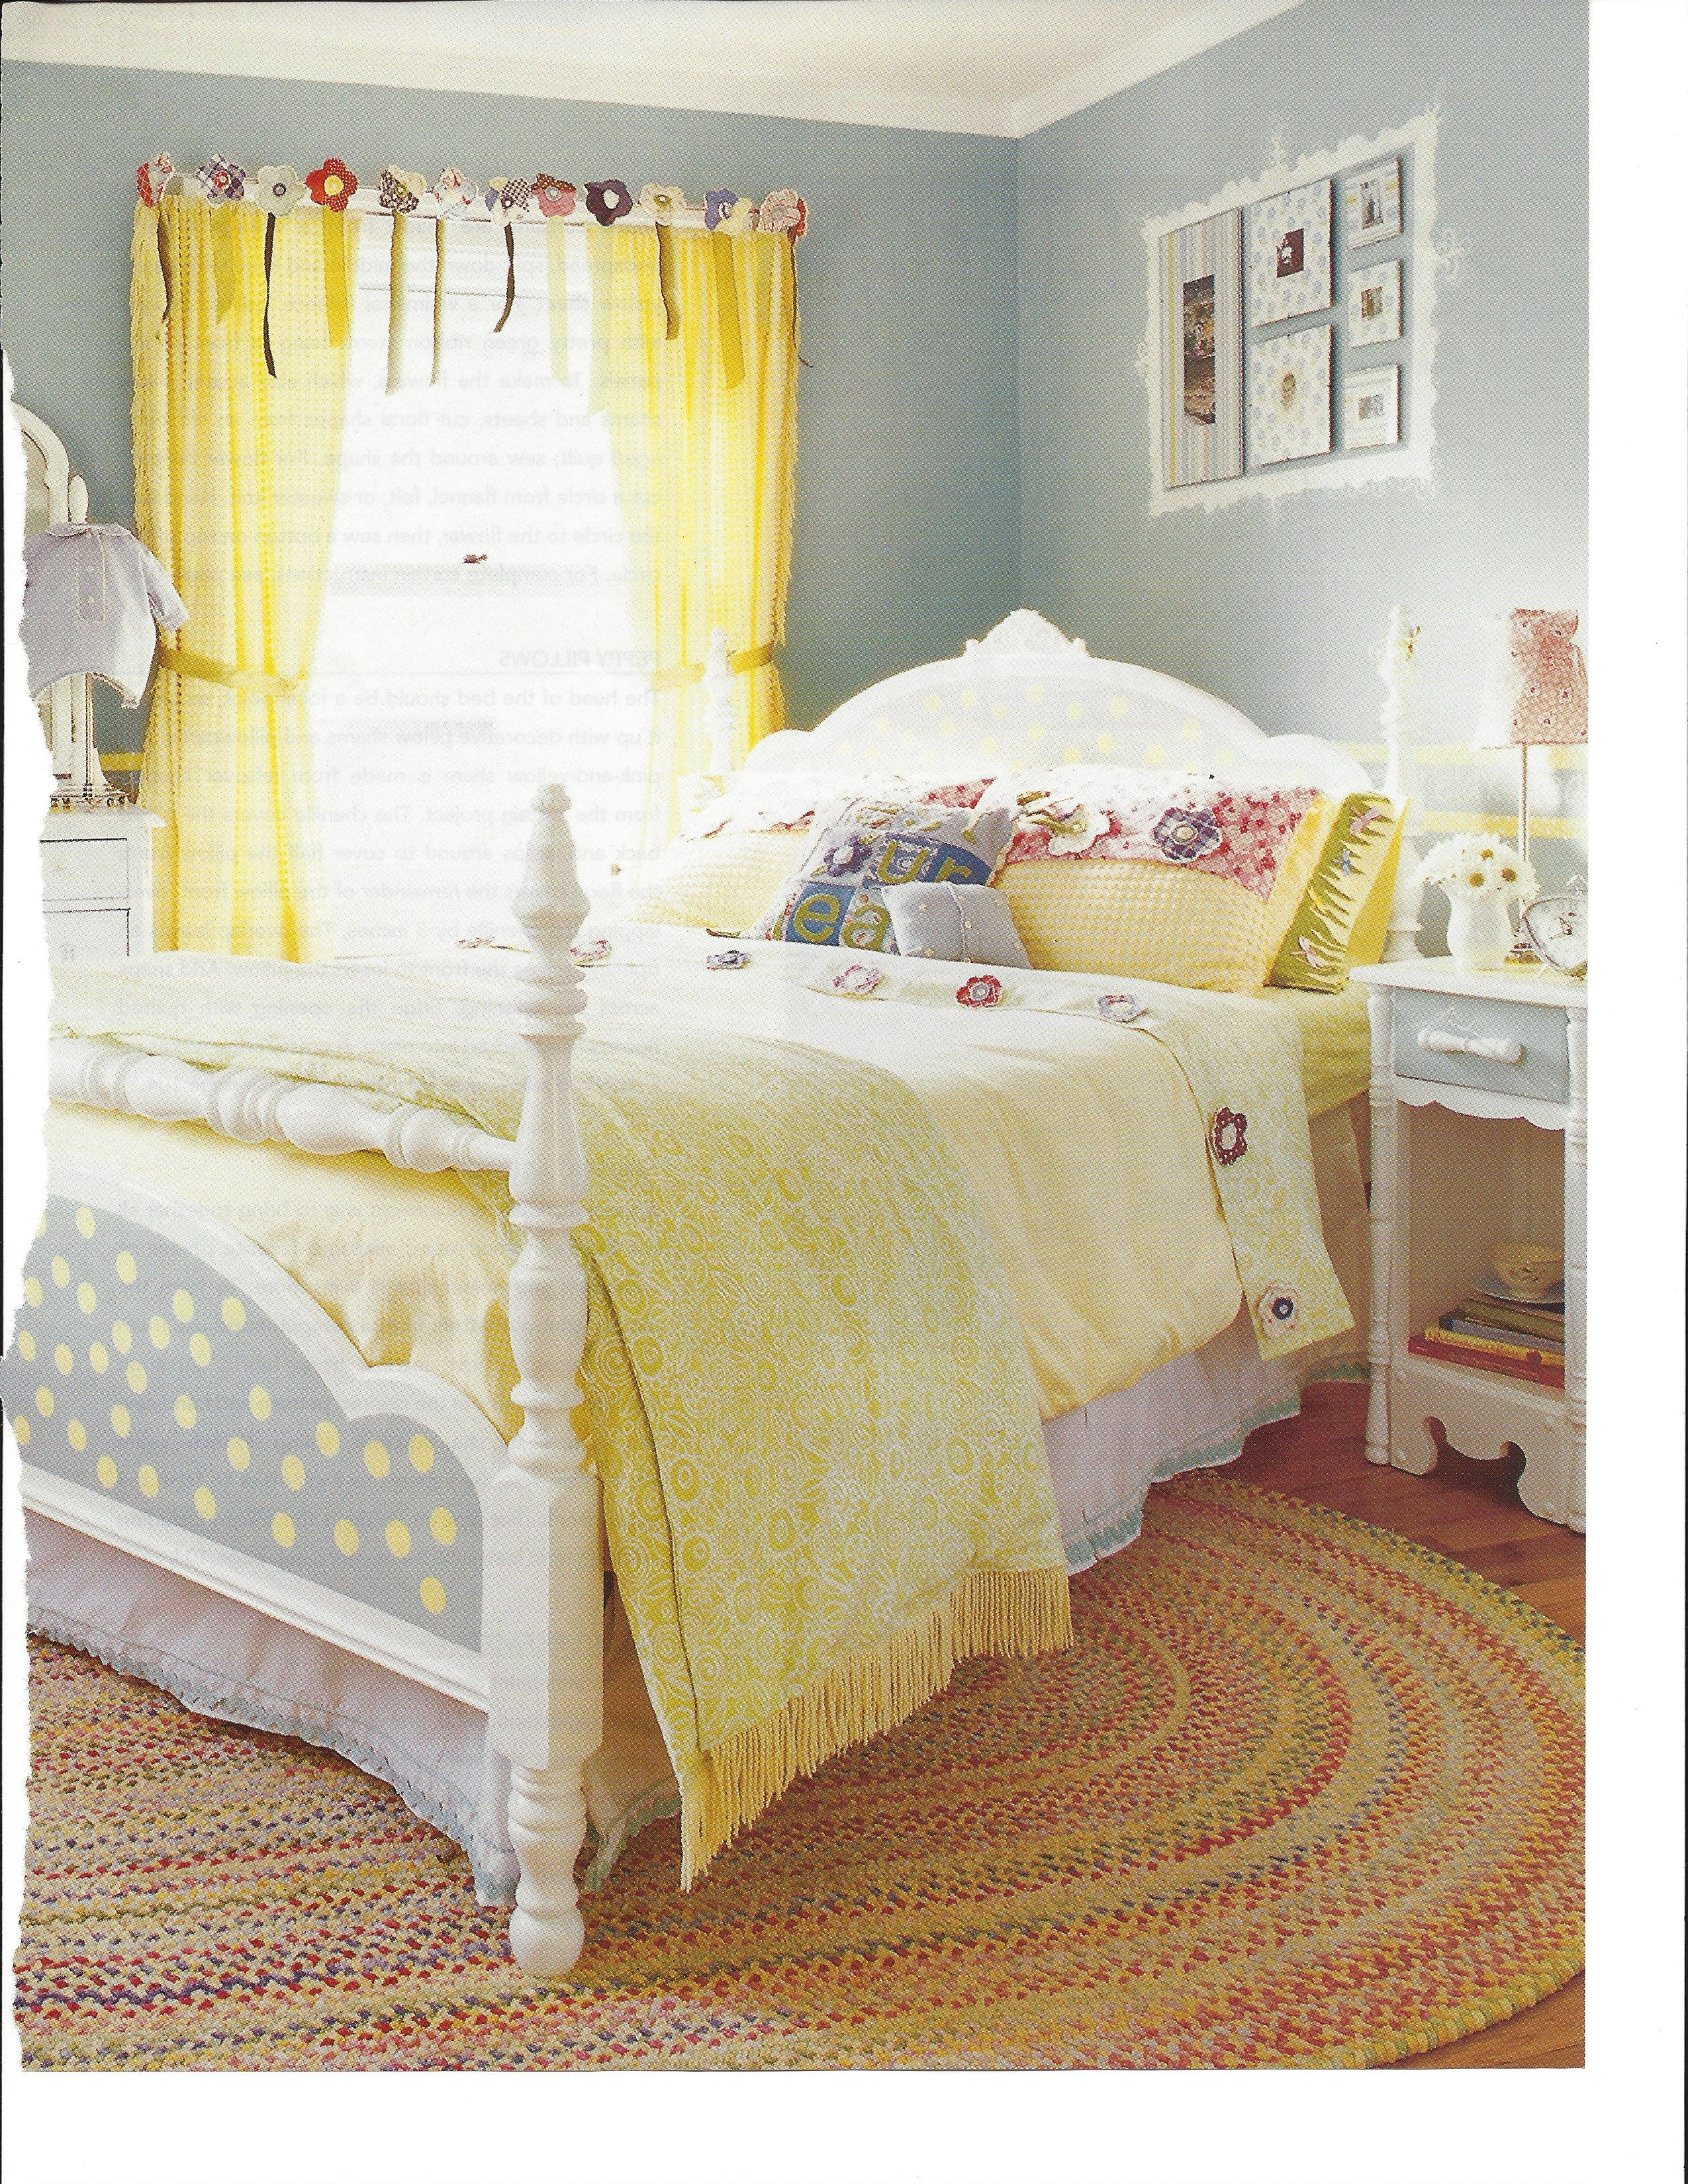 Curtains Made From Vintage Chenille Bedspread Quilted Flowers And